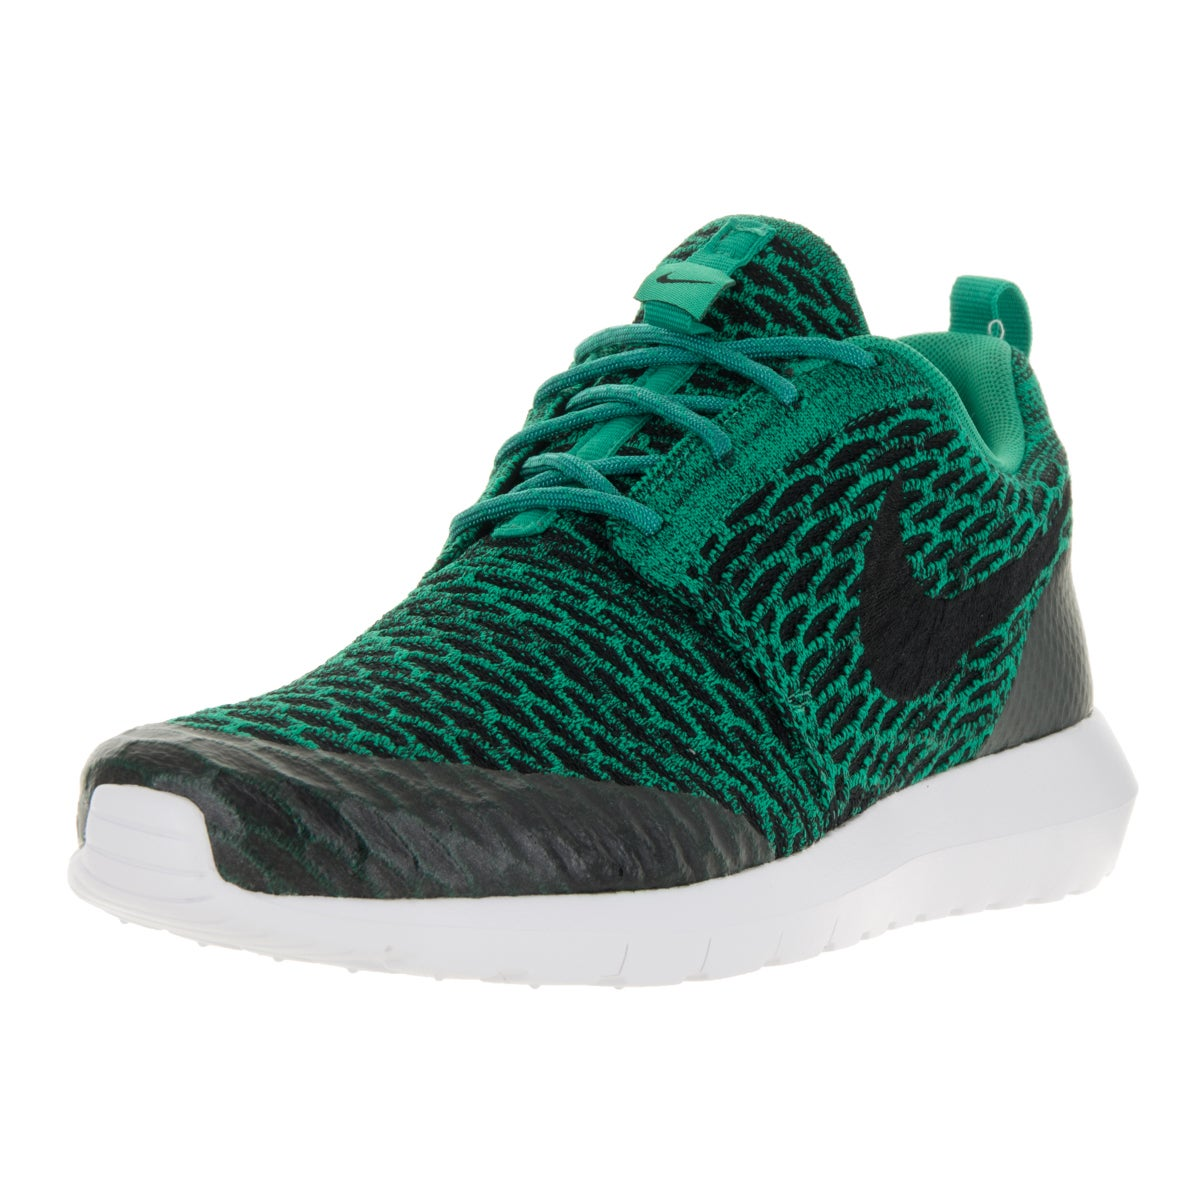 a5c54aec0bf5 Shop Nike Men s Roshe NM Flyknit SE Lucid Green Black White Running Shoe -  Free Shipping Today - Overstock - 13394785